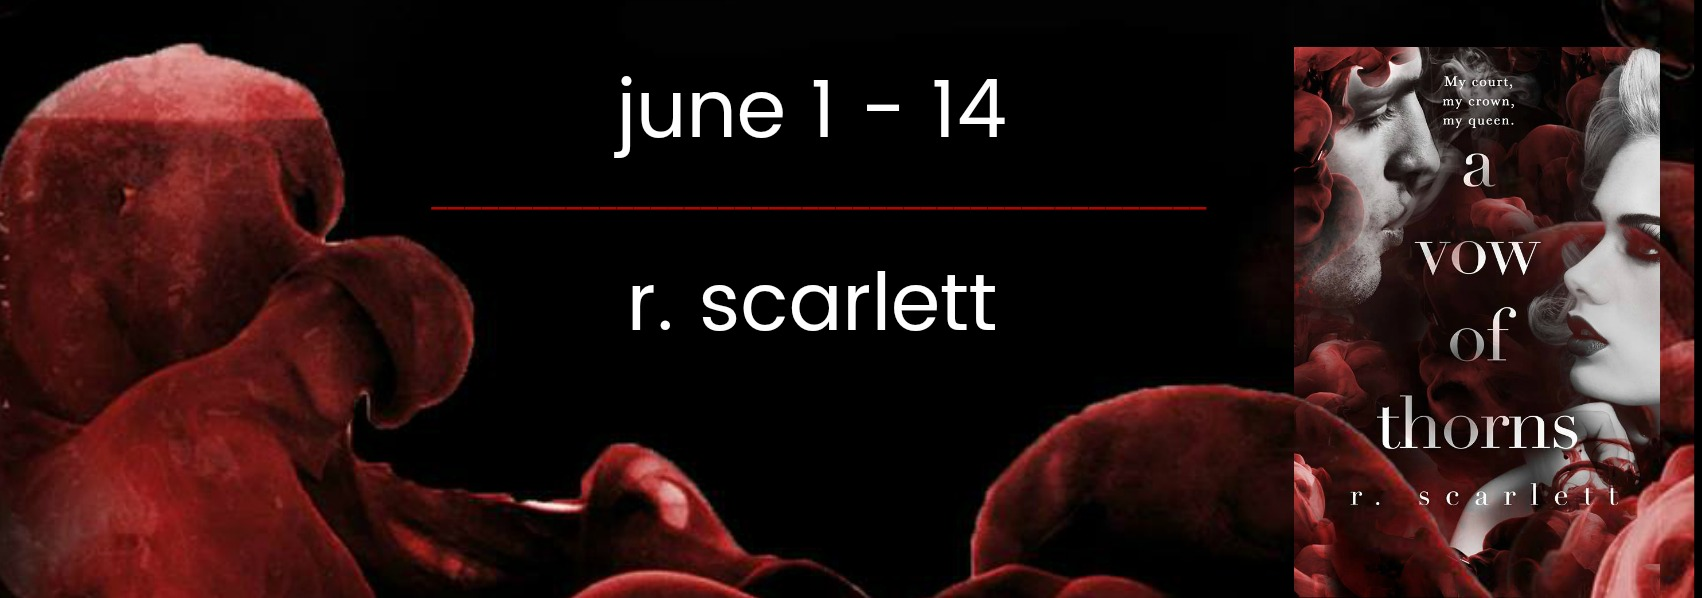 Blog Tour Review:  A Vow of Thorns by R. Scarlett